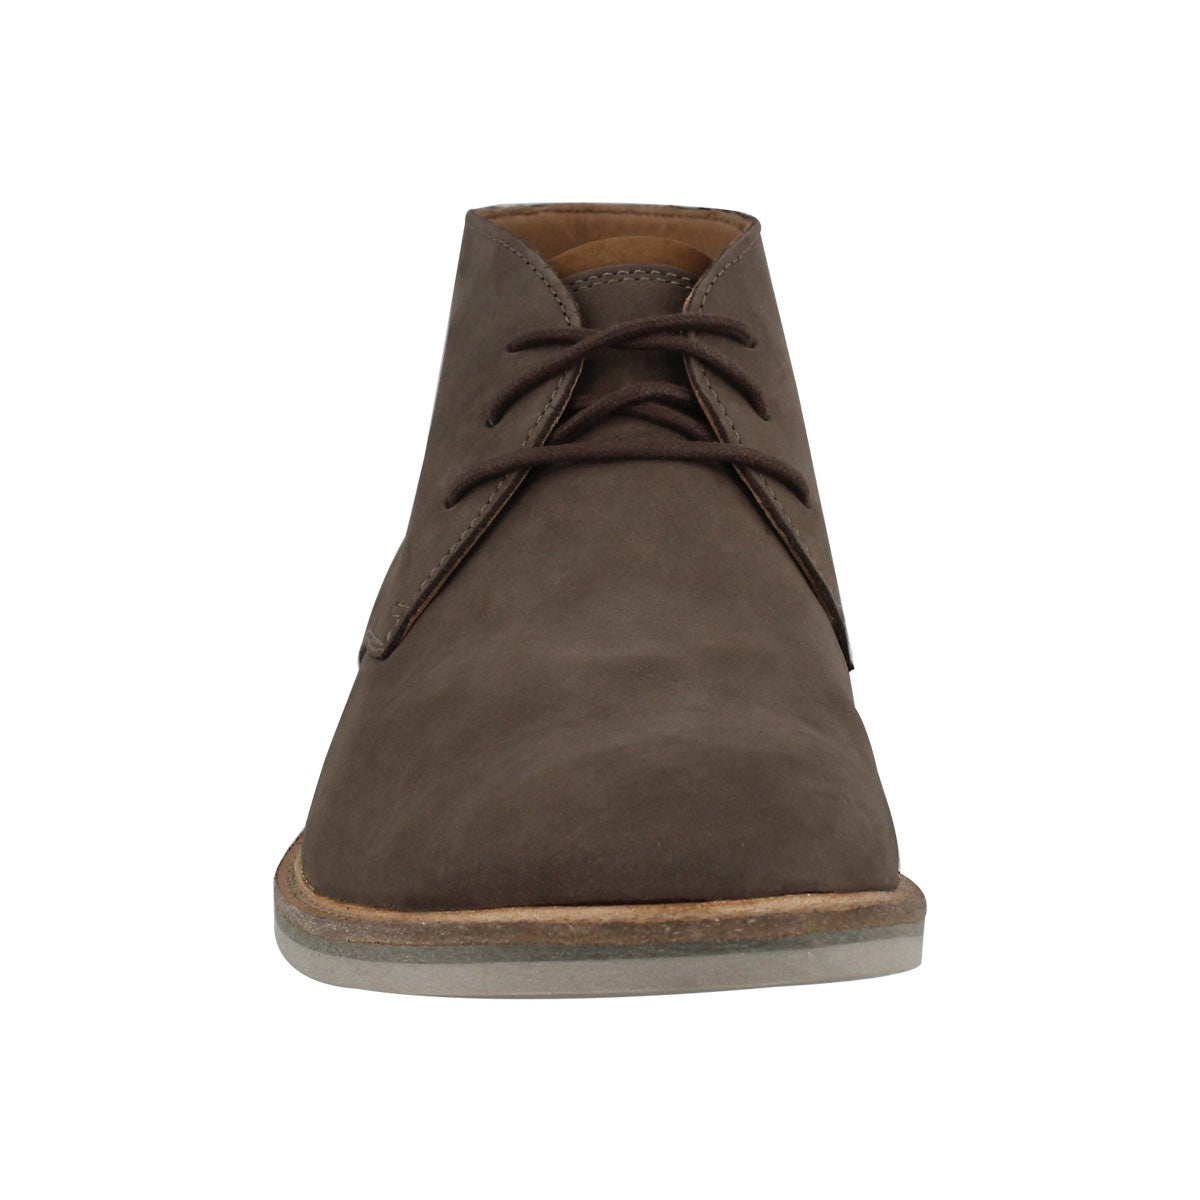 Mns Atticus Limit taupe chukka boot